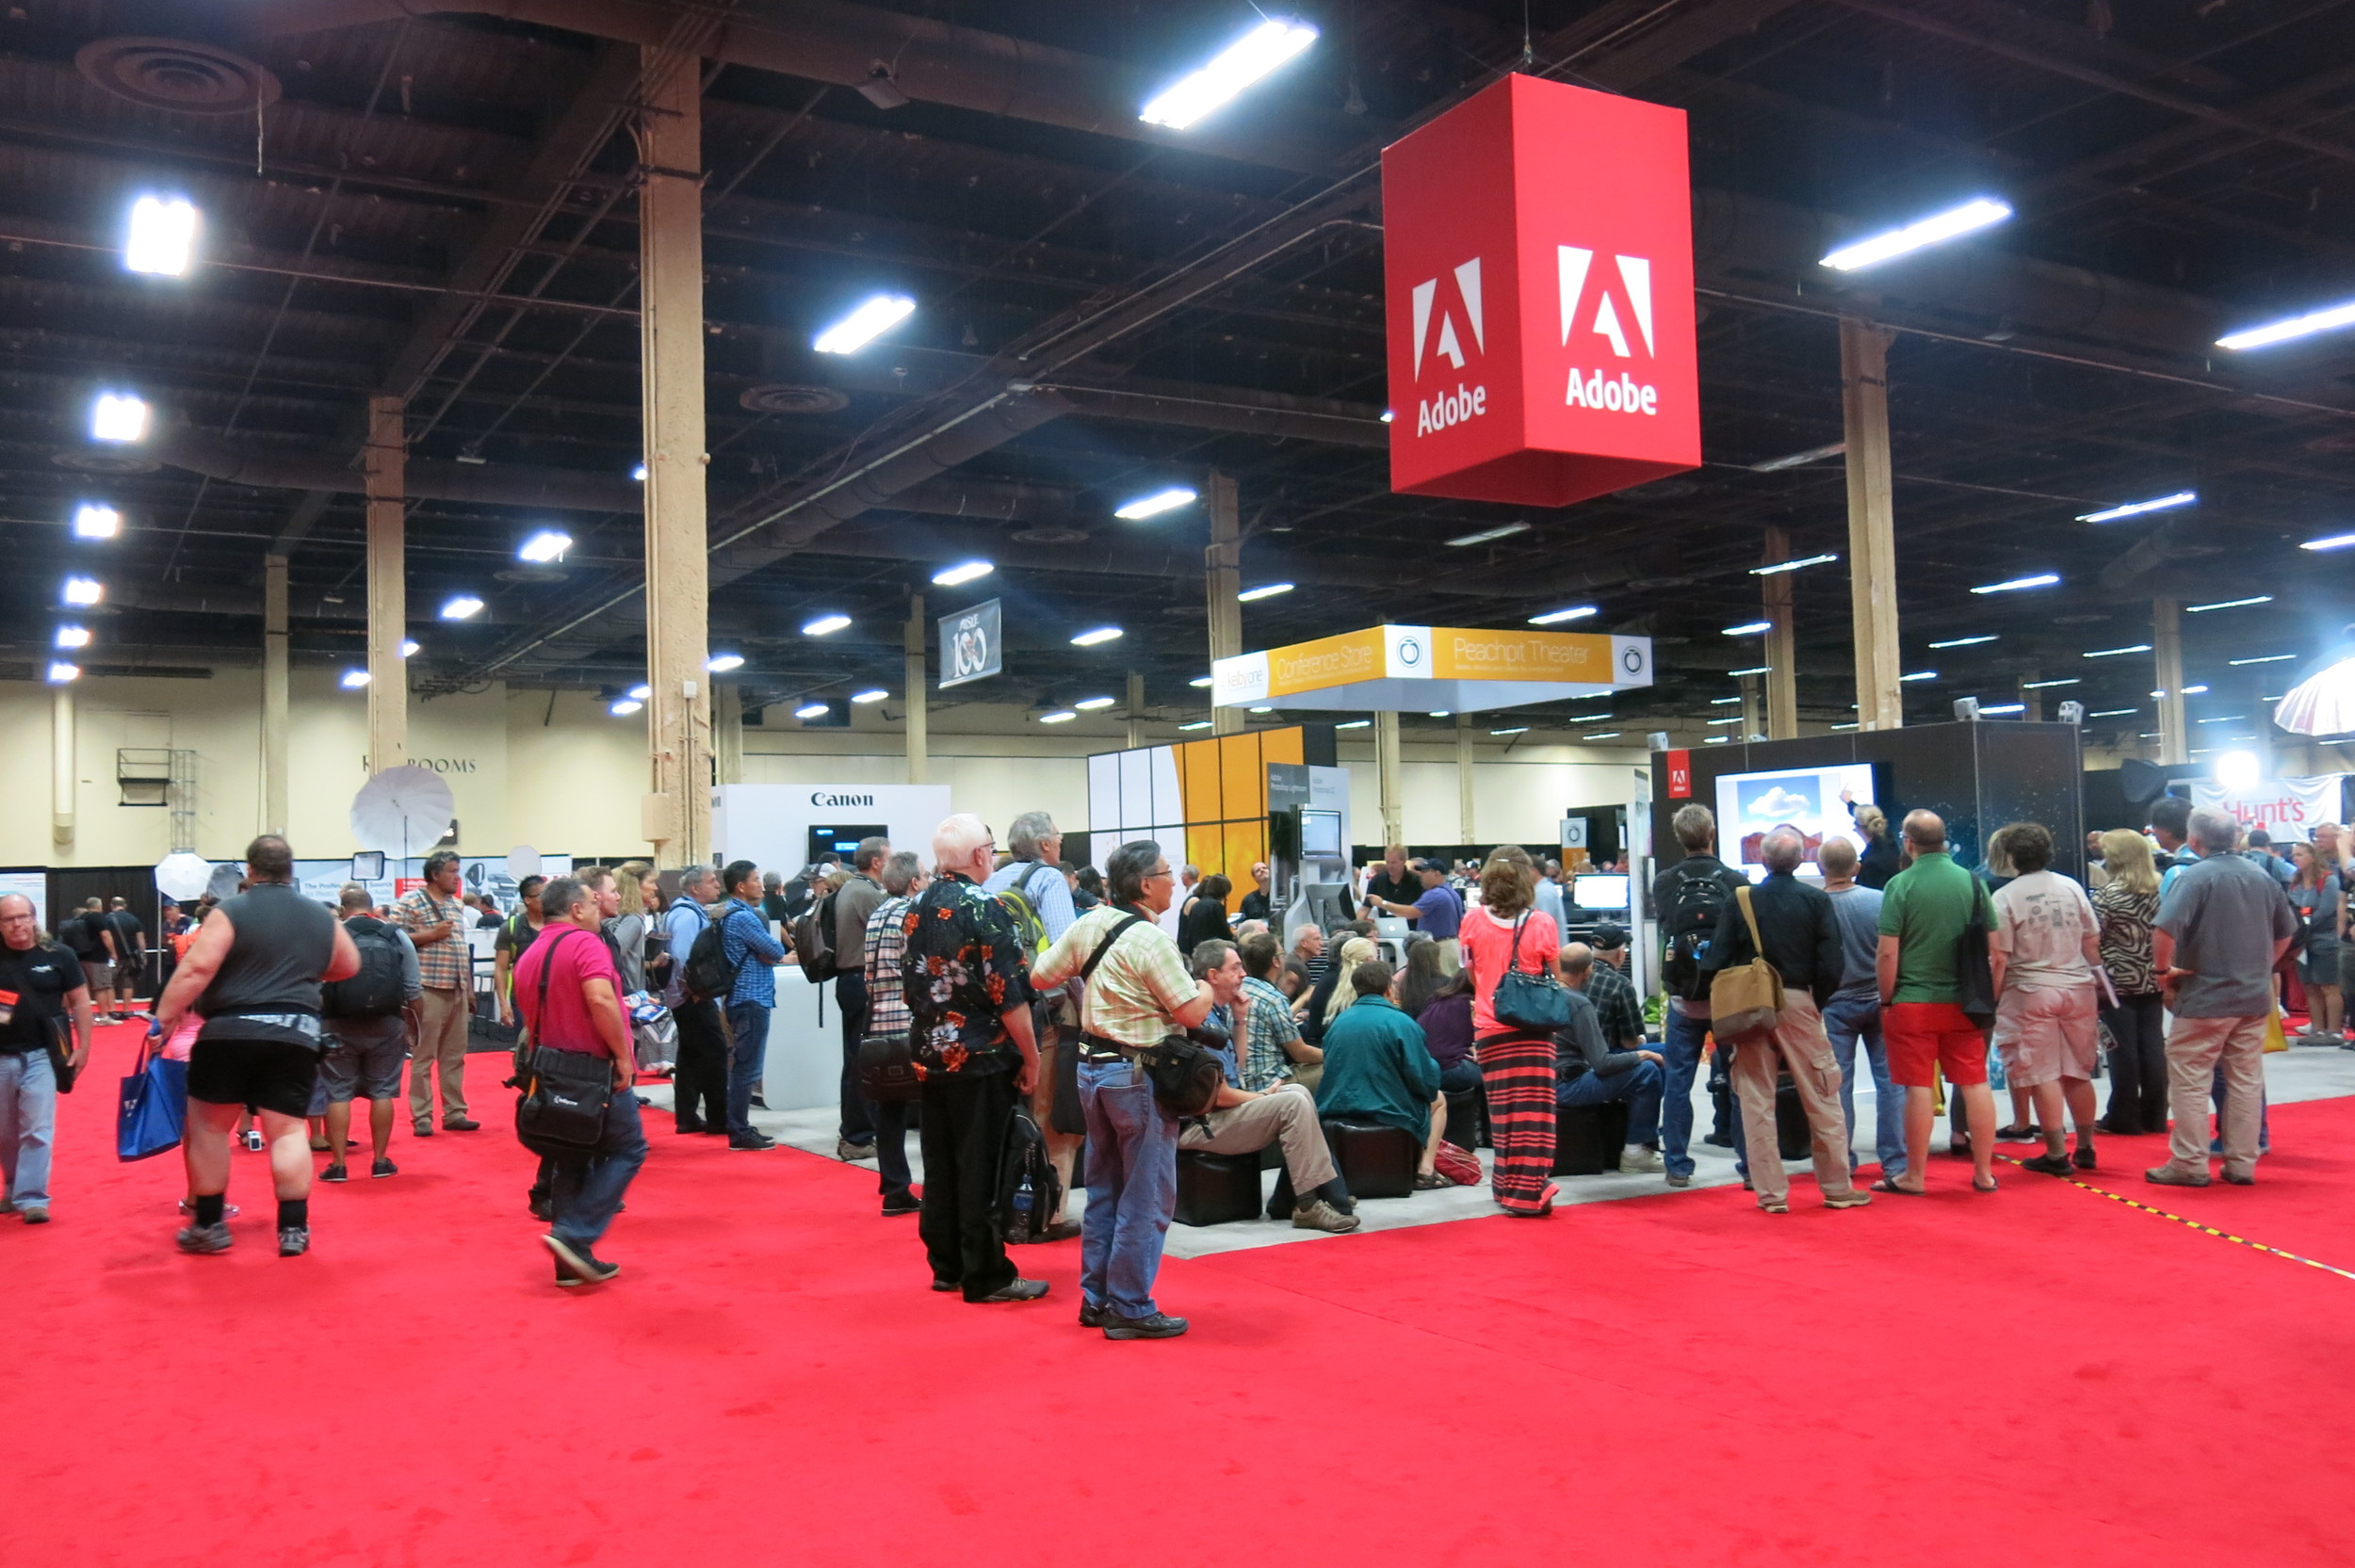 Adobe booth at the Expo floor.